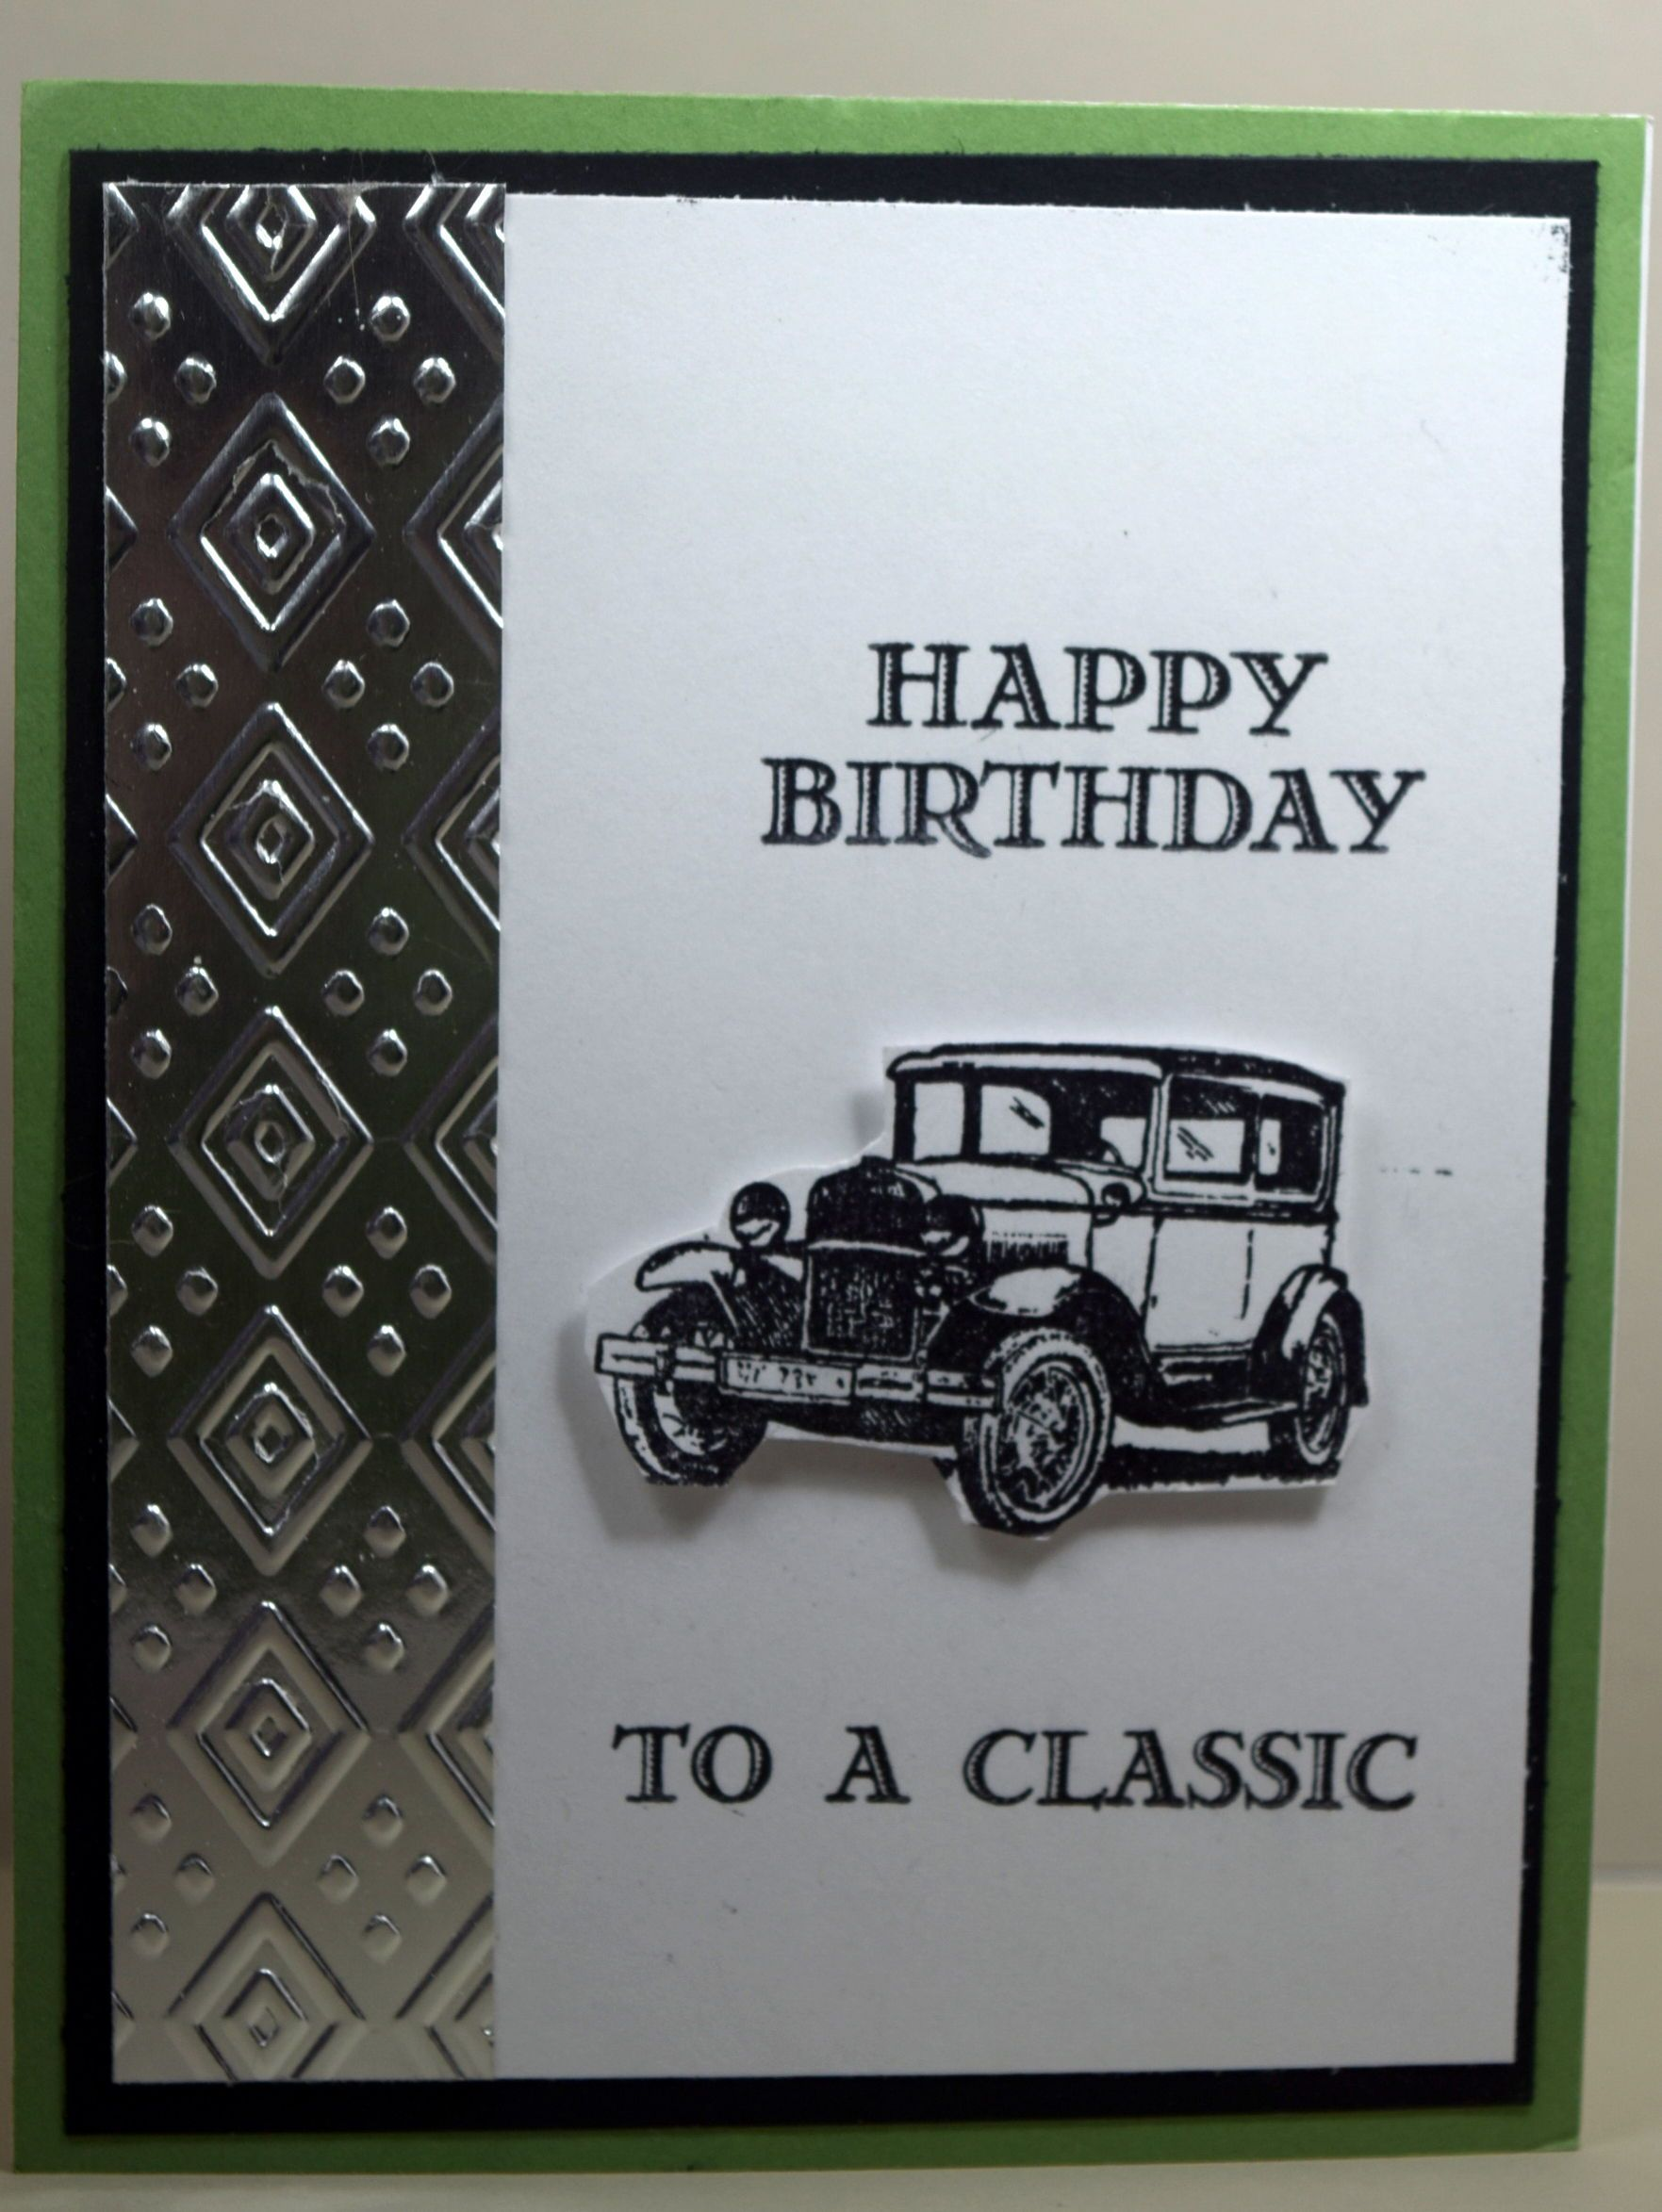 Stampin Up Birthday Card Made With Guy Greetings Stamp Set And Designed By Demo